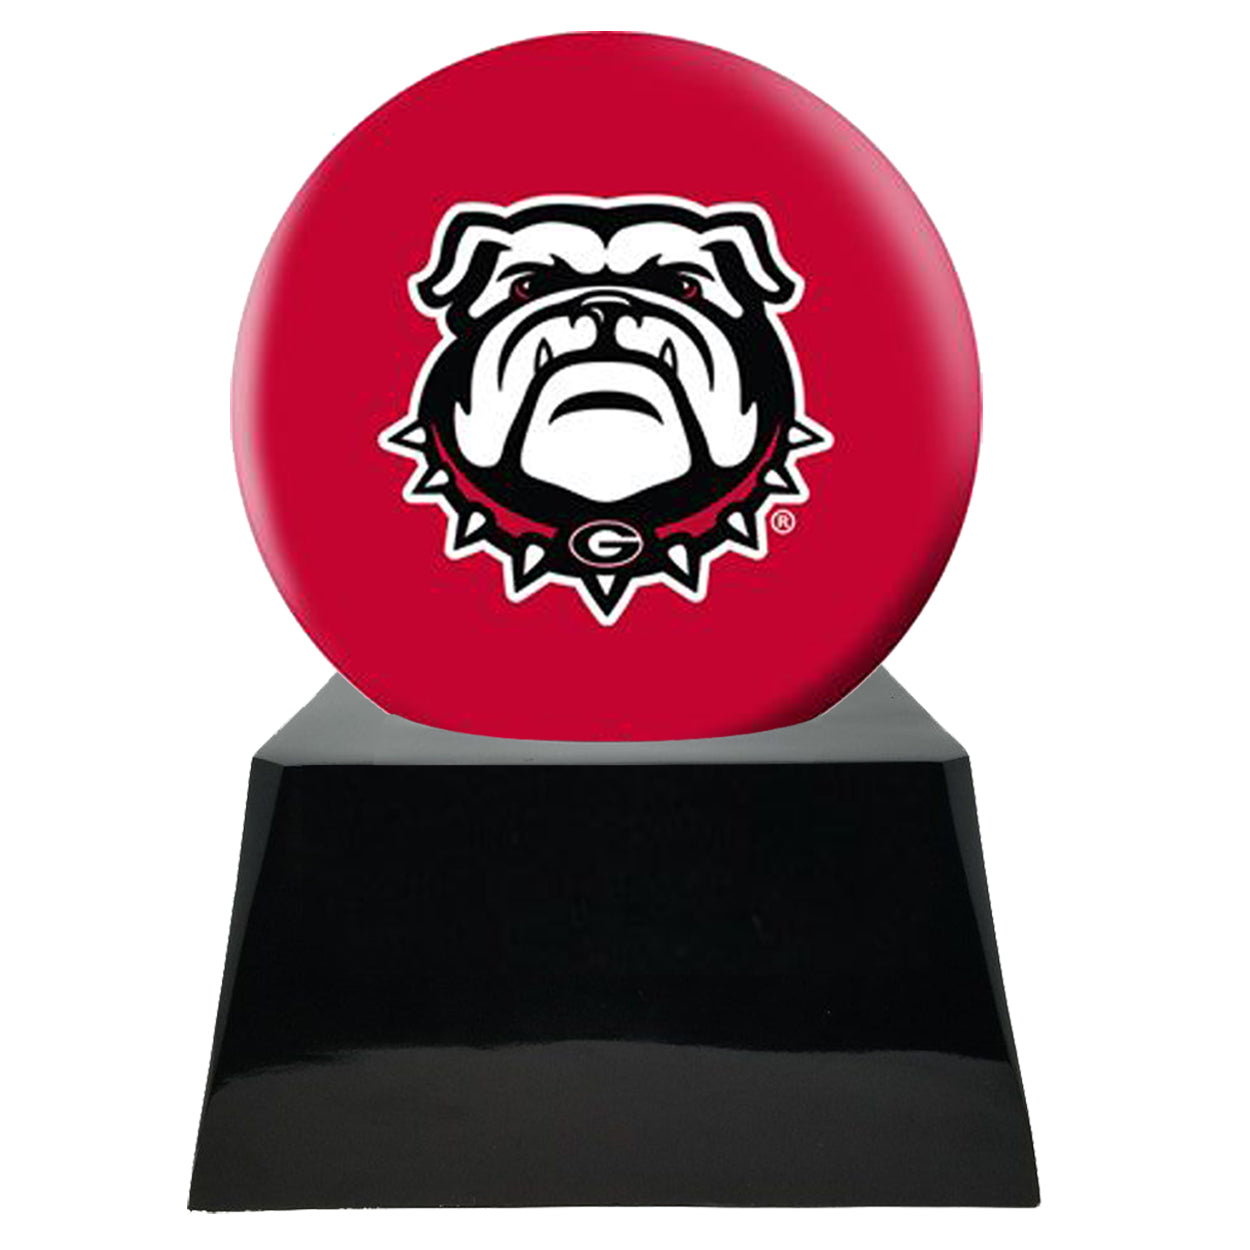 Football Cremation Urns For Human Ashes - Football Team Cremation Urn and Georgia Bulldogs Ball Decor with Custom Metal Plaque - Memorials4u